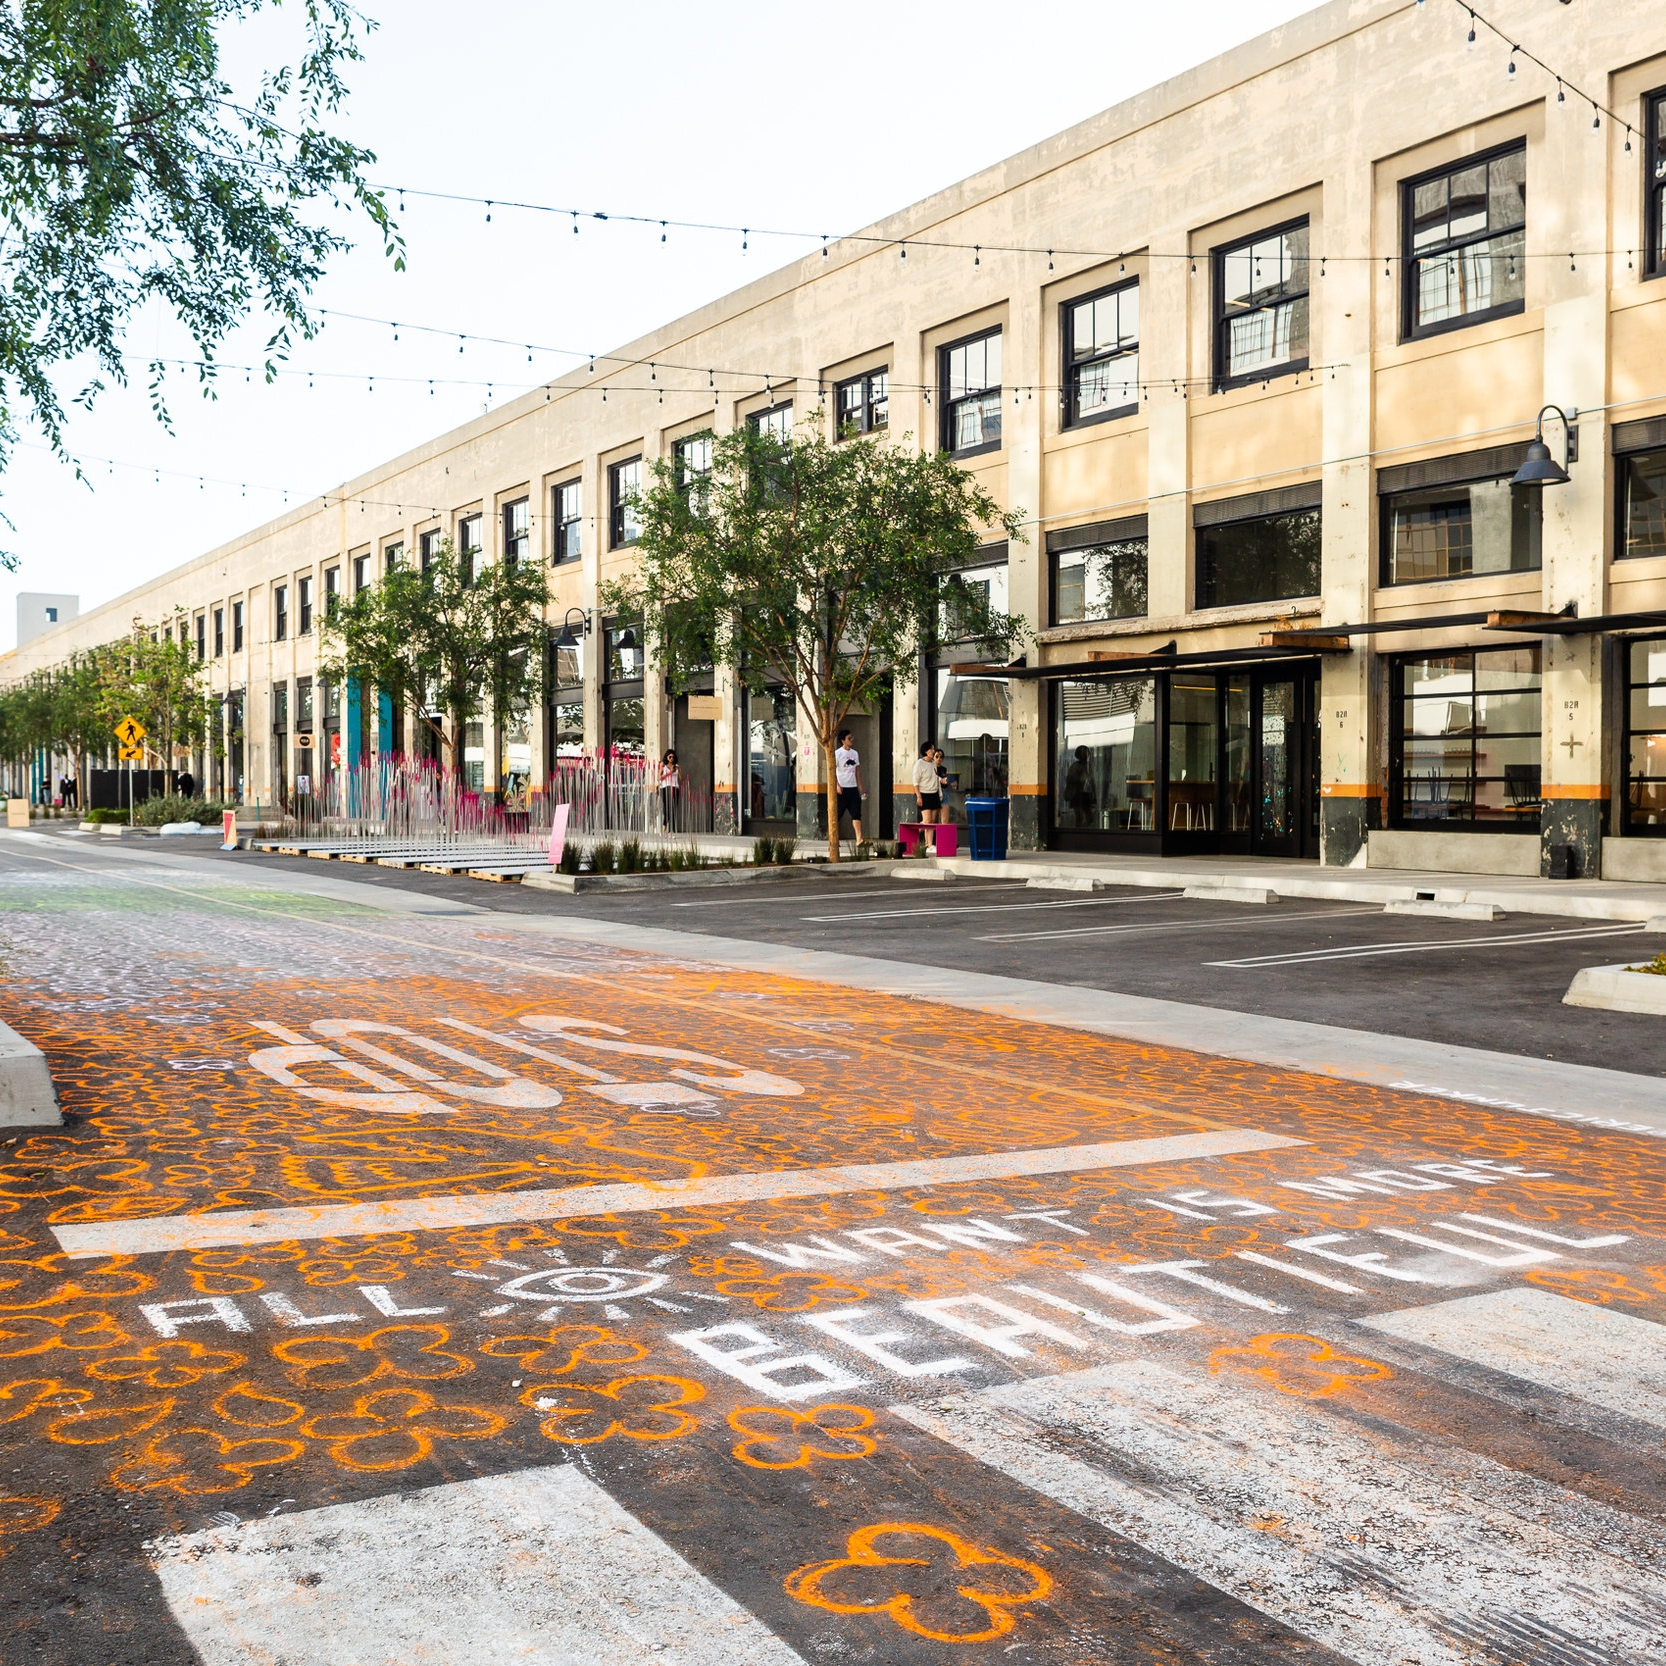 """the ground remembers by Eric Junker   Described as """"an impermanent impression of primordial remembering in real time,"""" artist Eric Junker covered the streets with vibrant chalk for this installation."""